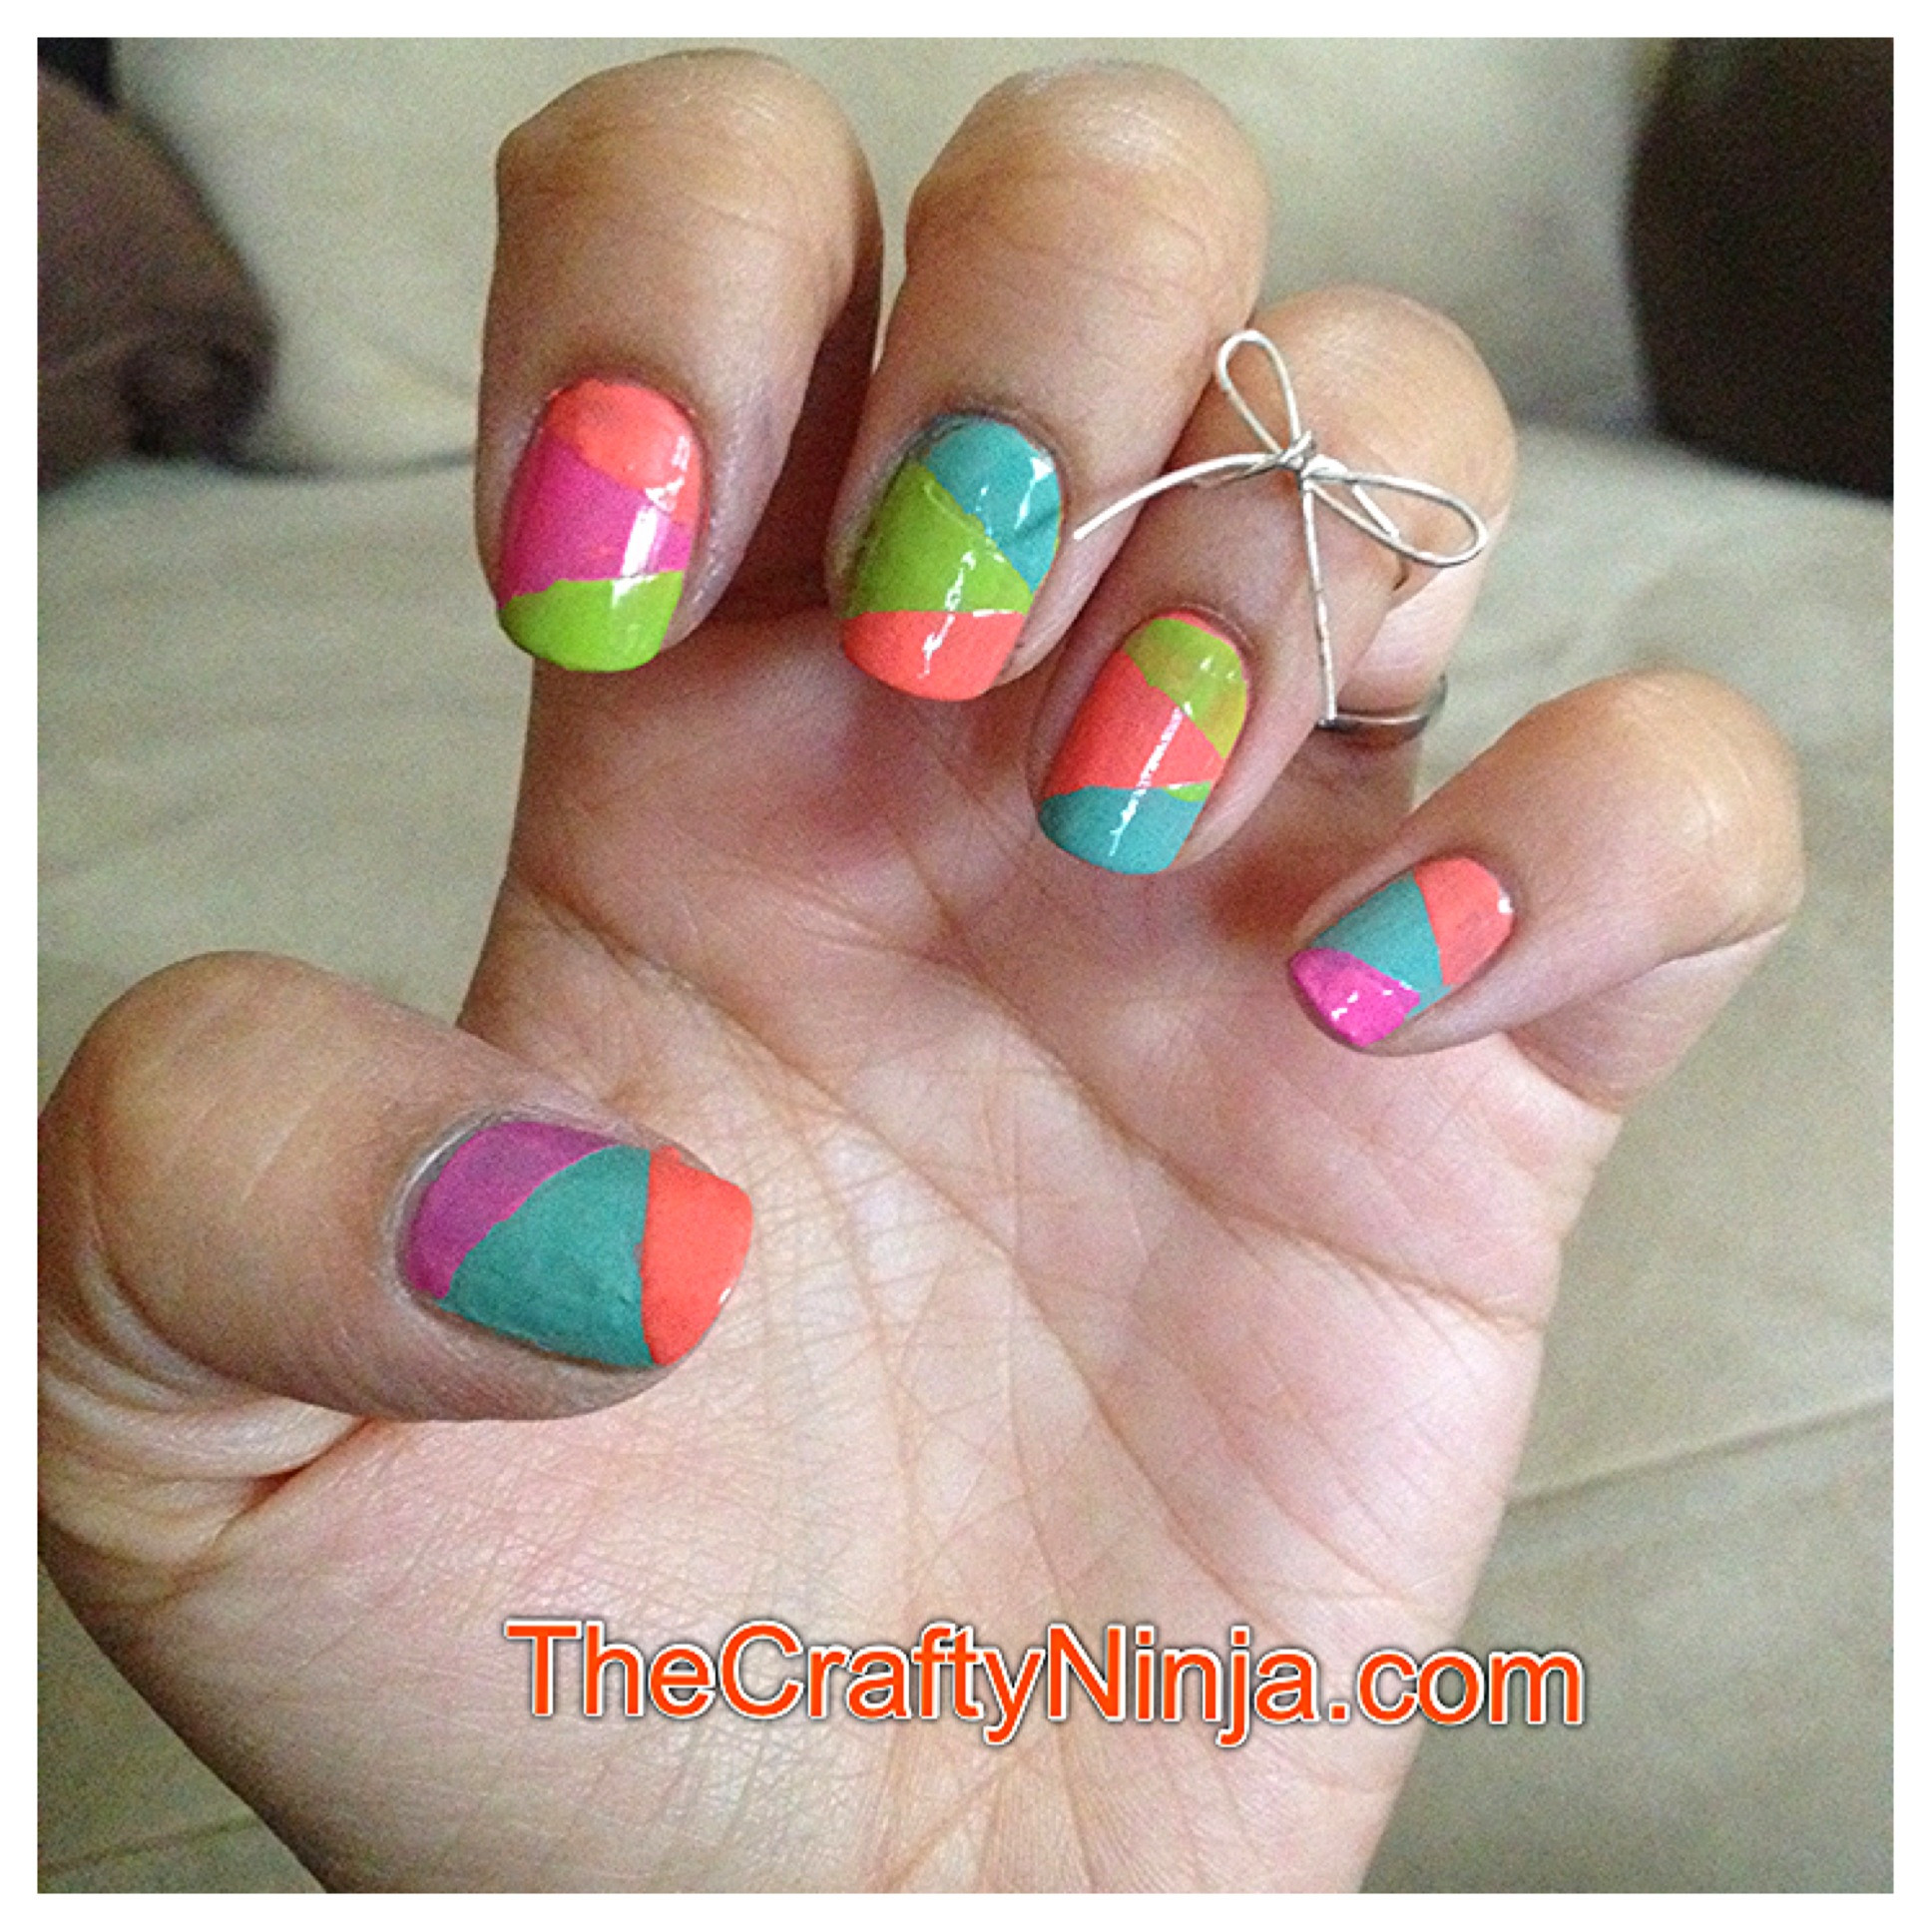 Best ideas about DIY Nail Art . Save or Pin Astounding DIY Nail Art Designs Using Scotch Tape Now.